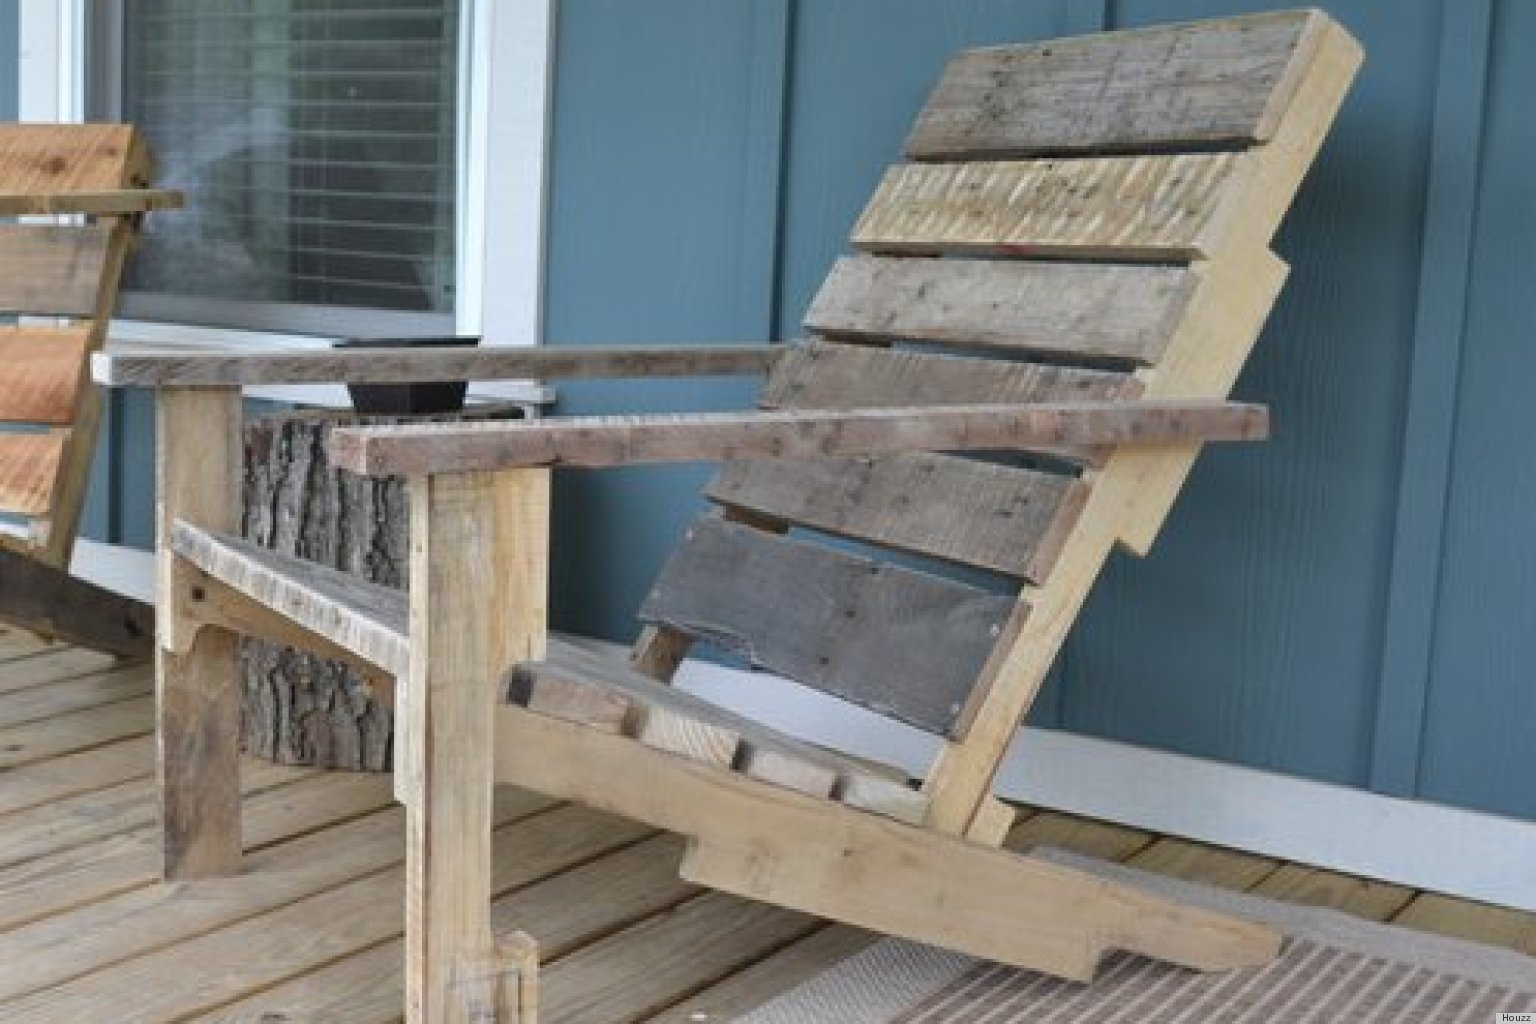 Build Your Own Wooden Deck Chair From A Pallet -- For $10!